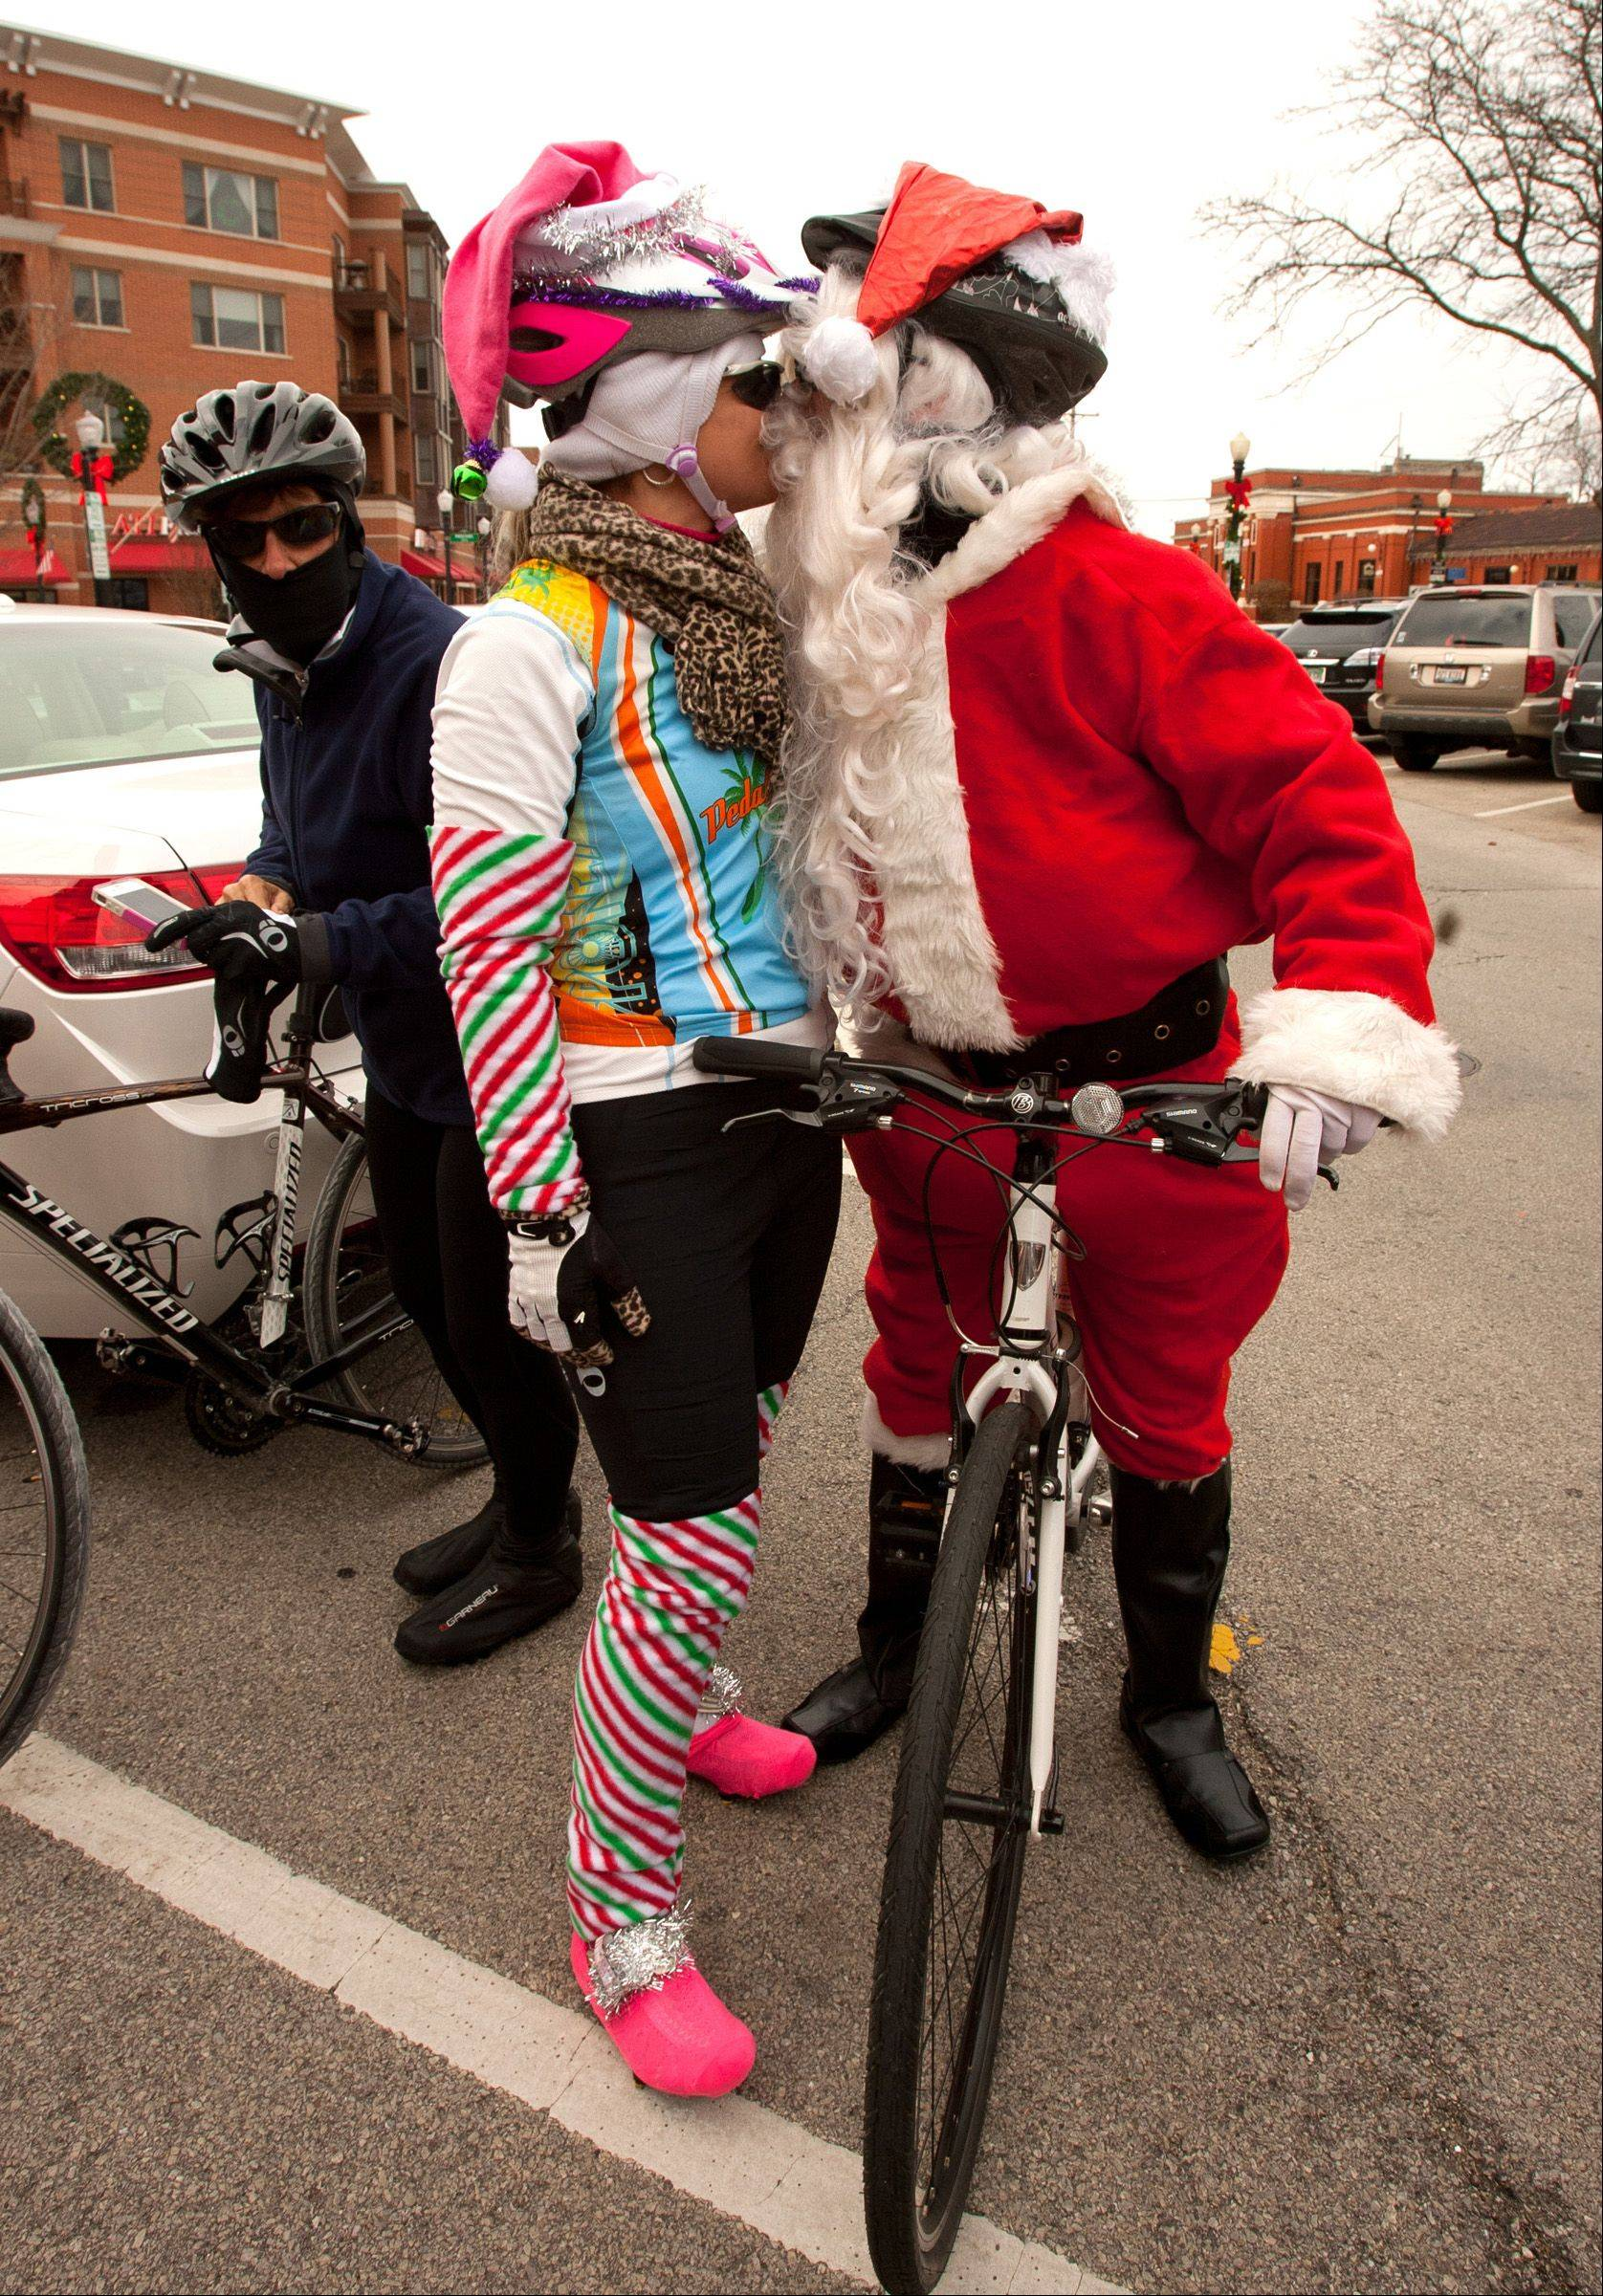 Vita Zadura of Chicago embraces her fiancee Mark Deles, of Mt. Prospect. They, along with other members of the Pedal Heads bicycle club, rode from downtown Downers Grove to Good Samaritan Hospital wearing Santa suits to deliver gifts to hospitalized children.